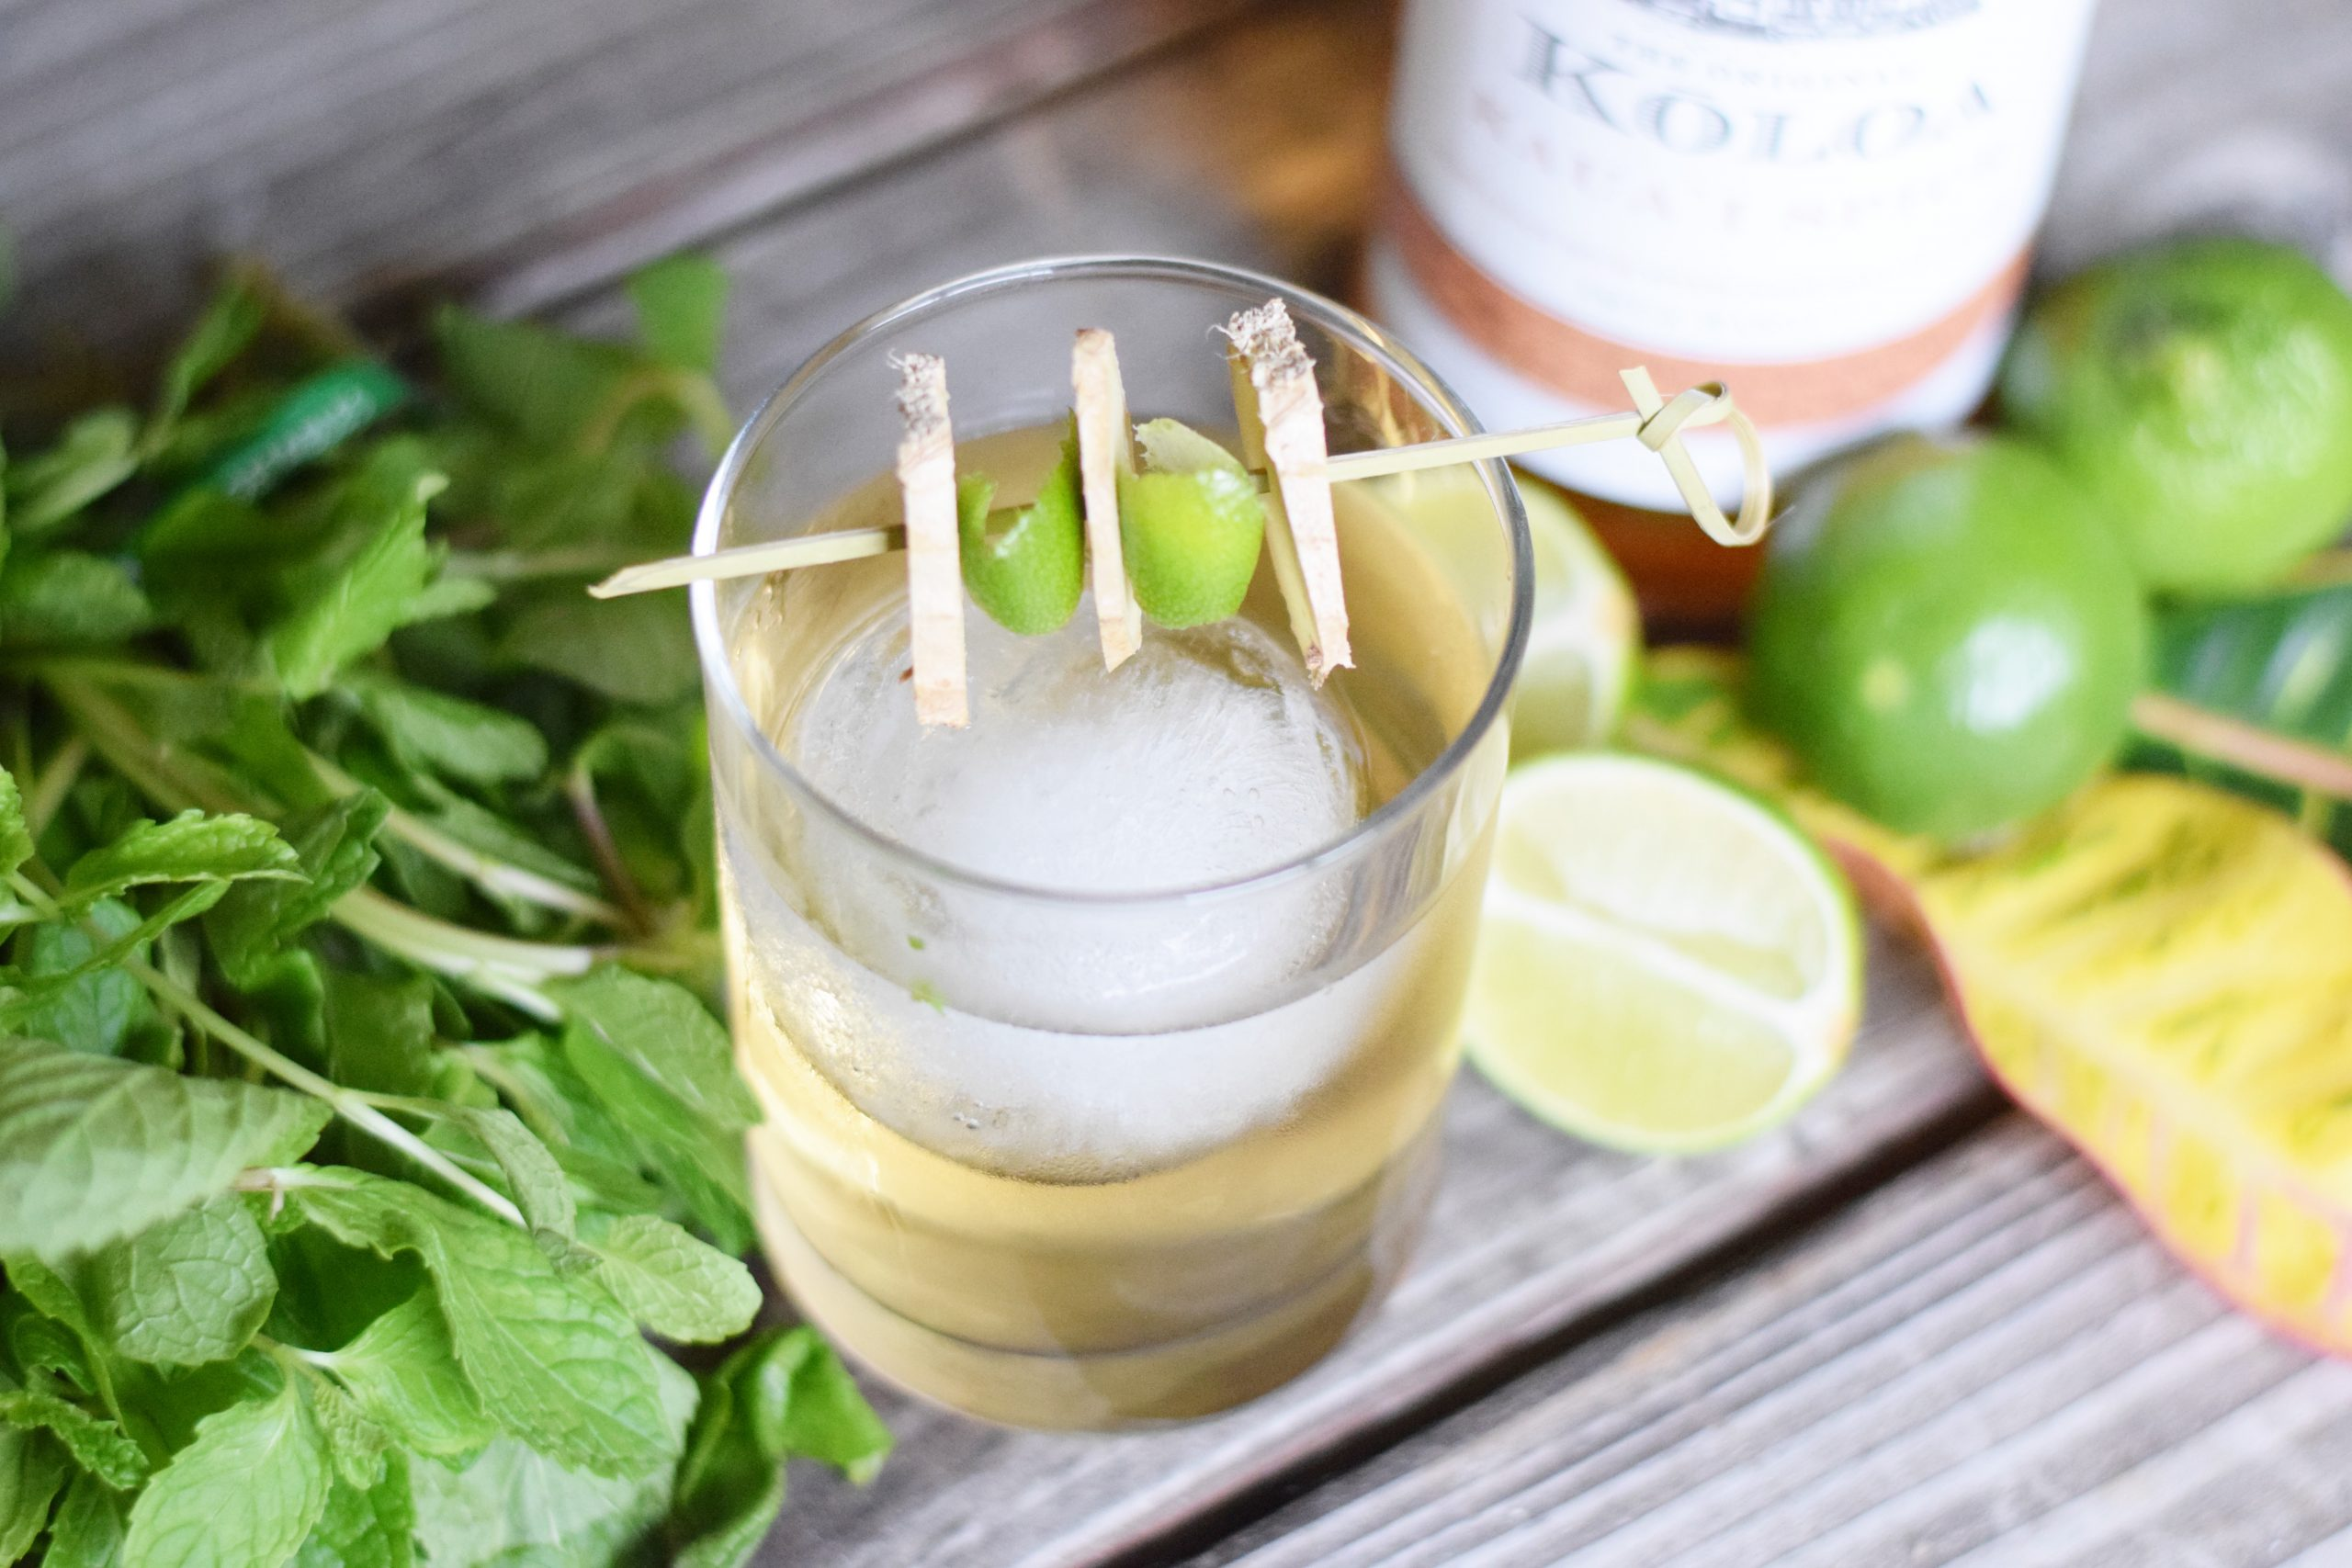 Spicy Ginger Mule Cocktail With Kōloa Rum — A refreshing twist on a classic Moscow Mule featuring Kōloa Spiced Rum, local ginger beer and infused with hints of mint and lime! | Moscow Mule Recipe - Ginger Beer Cocktail Recipes - Ginger Beer Cocktail - Cocktail with Kōloa Rum - Ginger Mule recipe